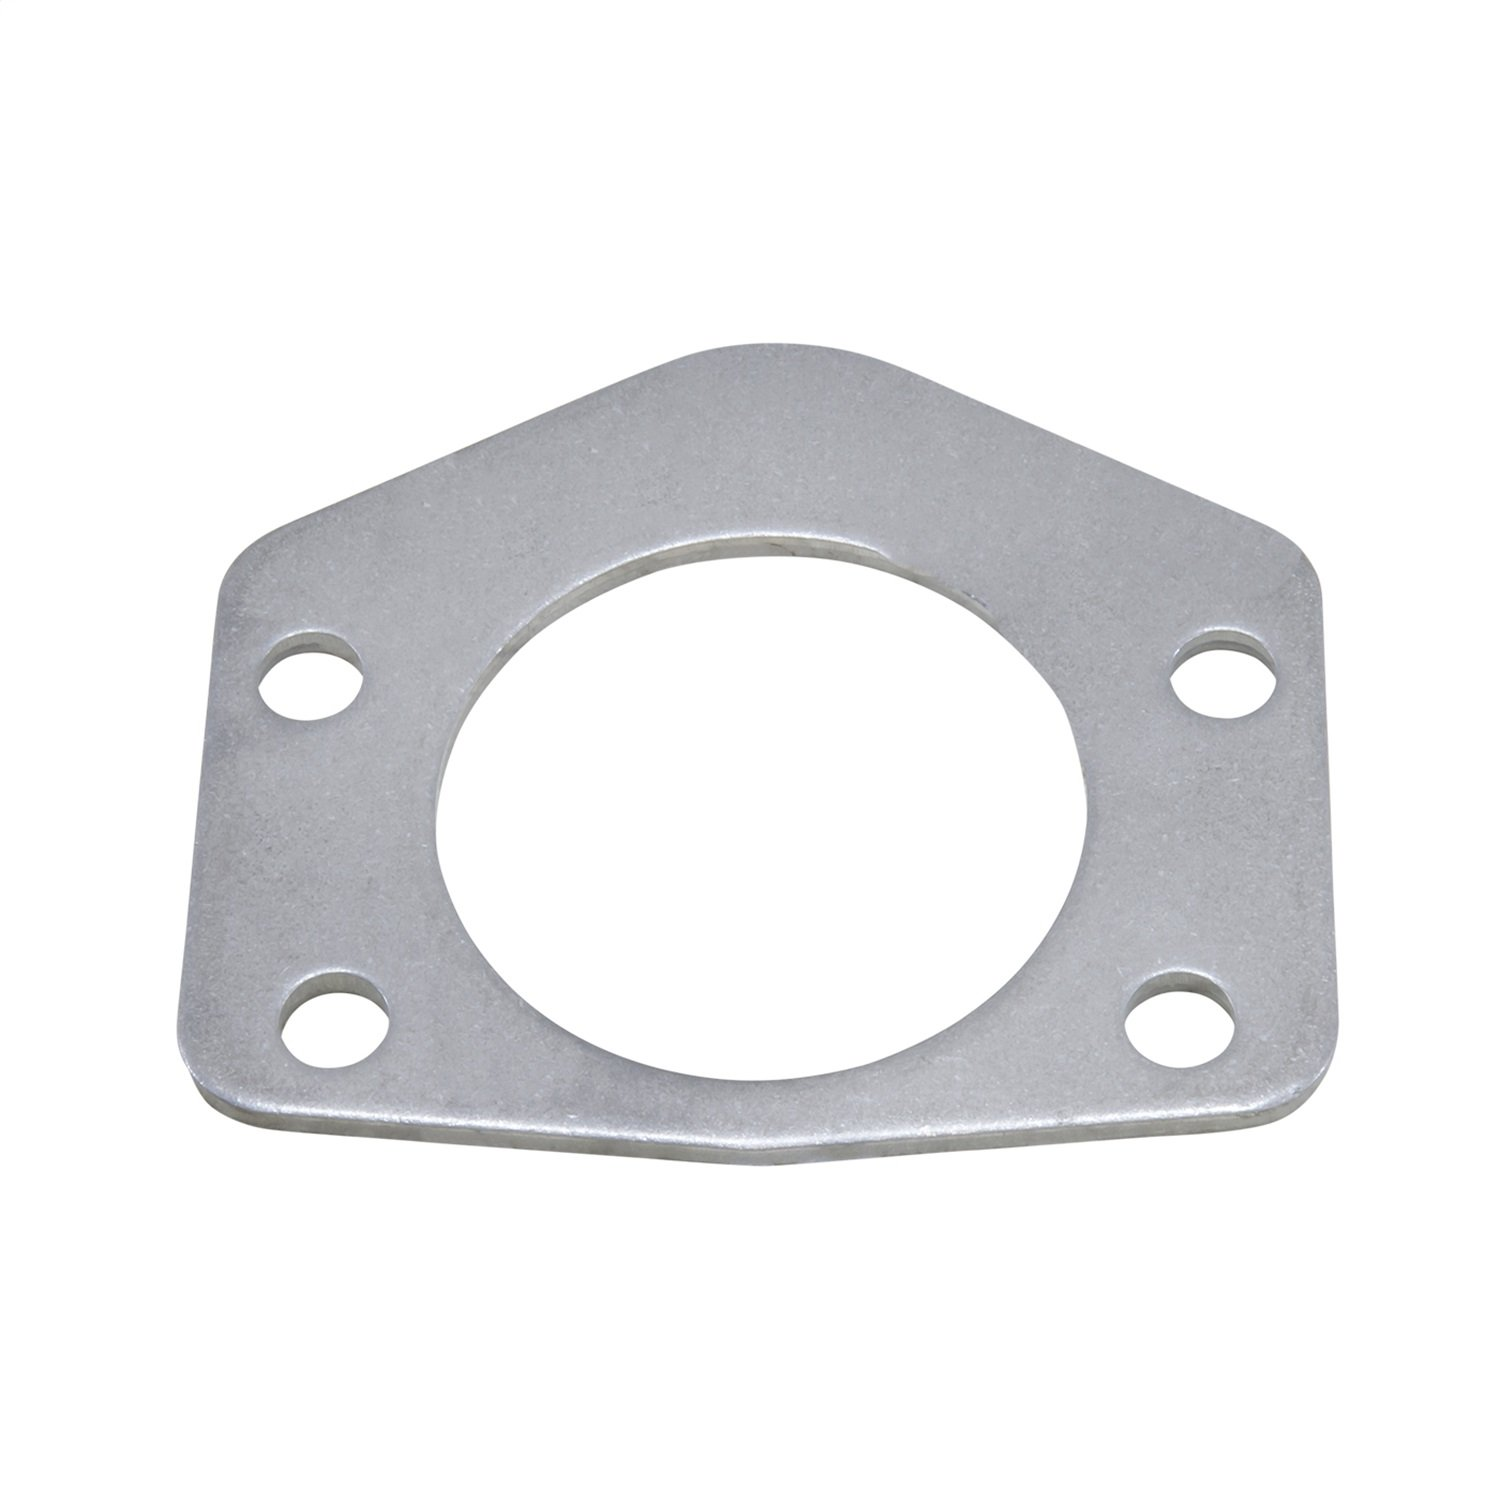 Yukon (YSPRET-010) Axle Bearing Retainer Plate for Jeep TJ Rear Differential